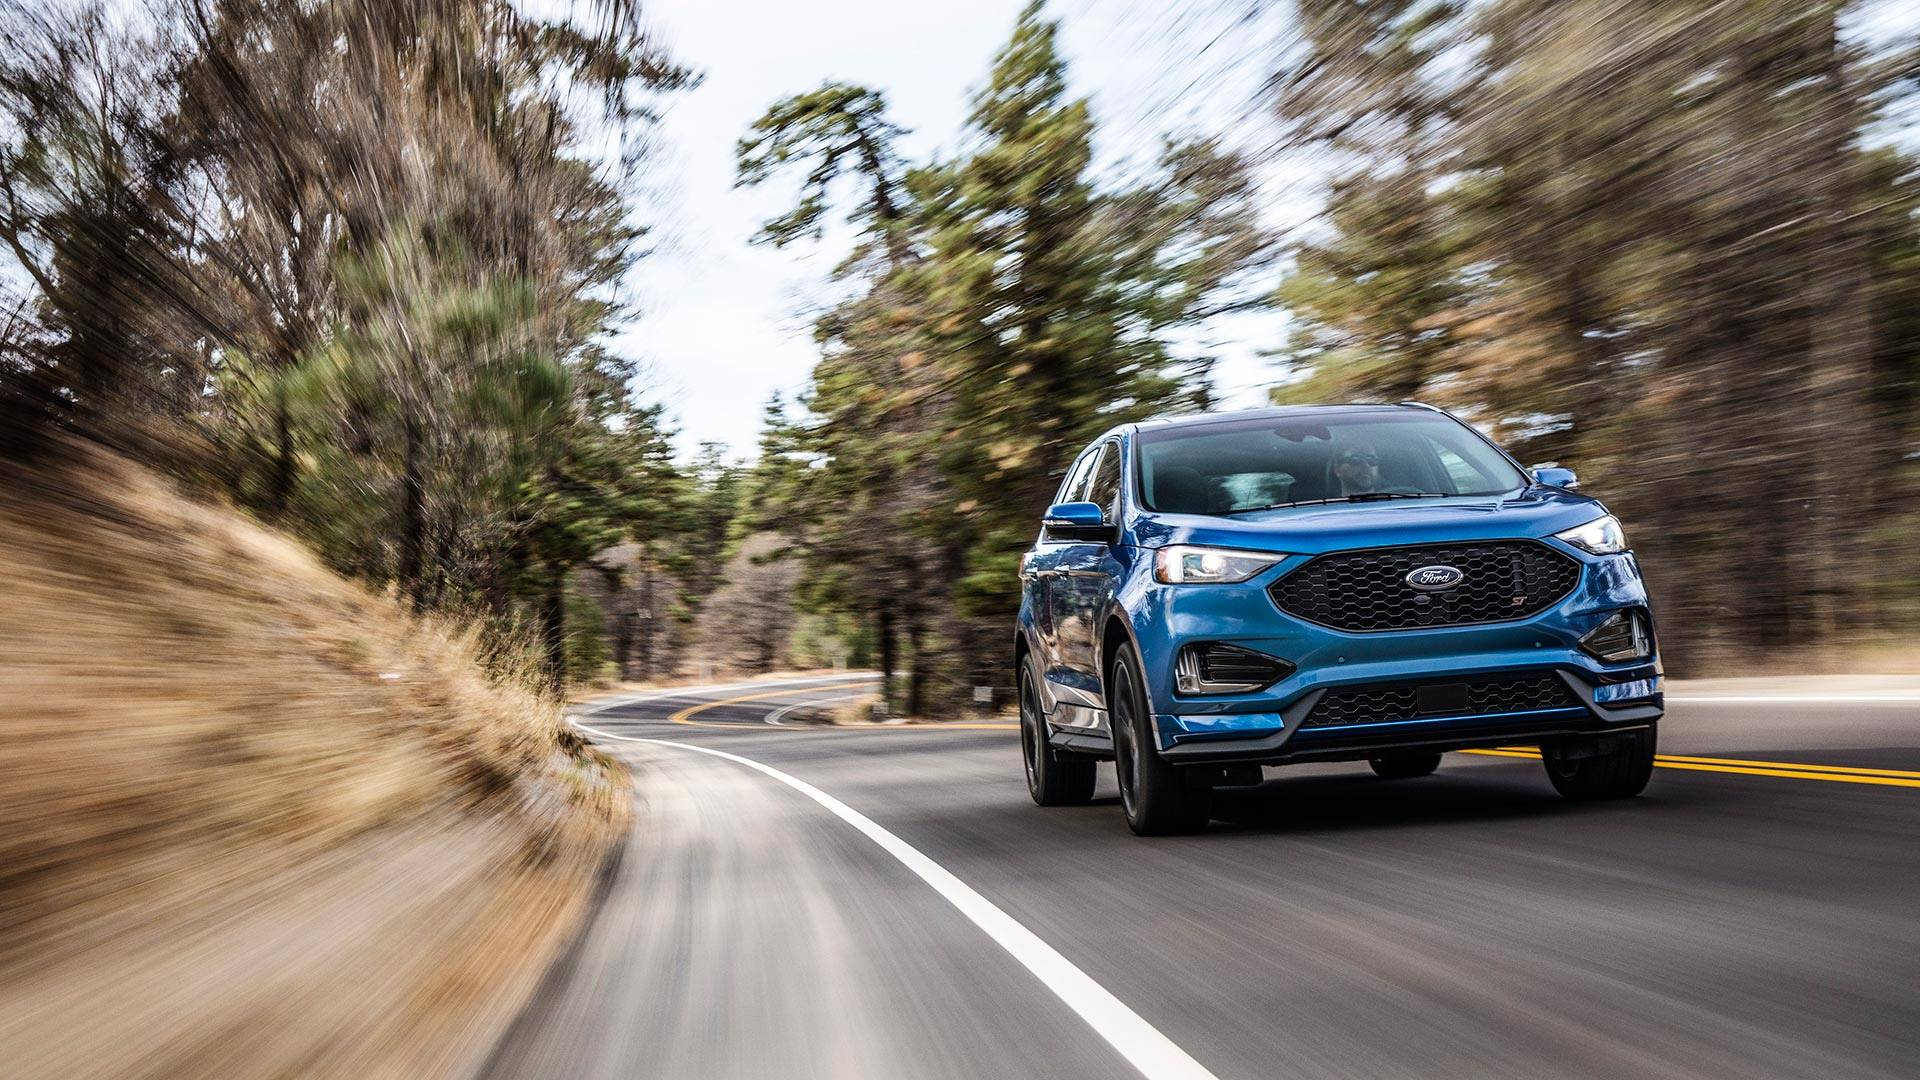 2019 Ford Edge St Arriving This Summer Priced At 43 350